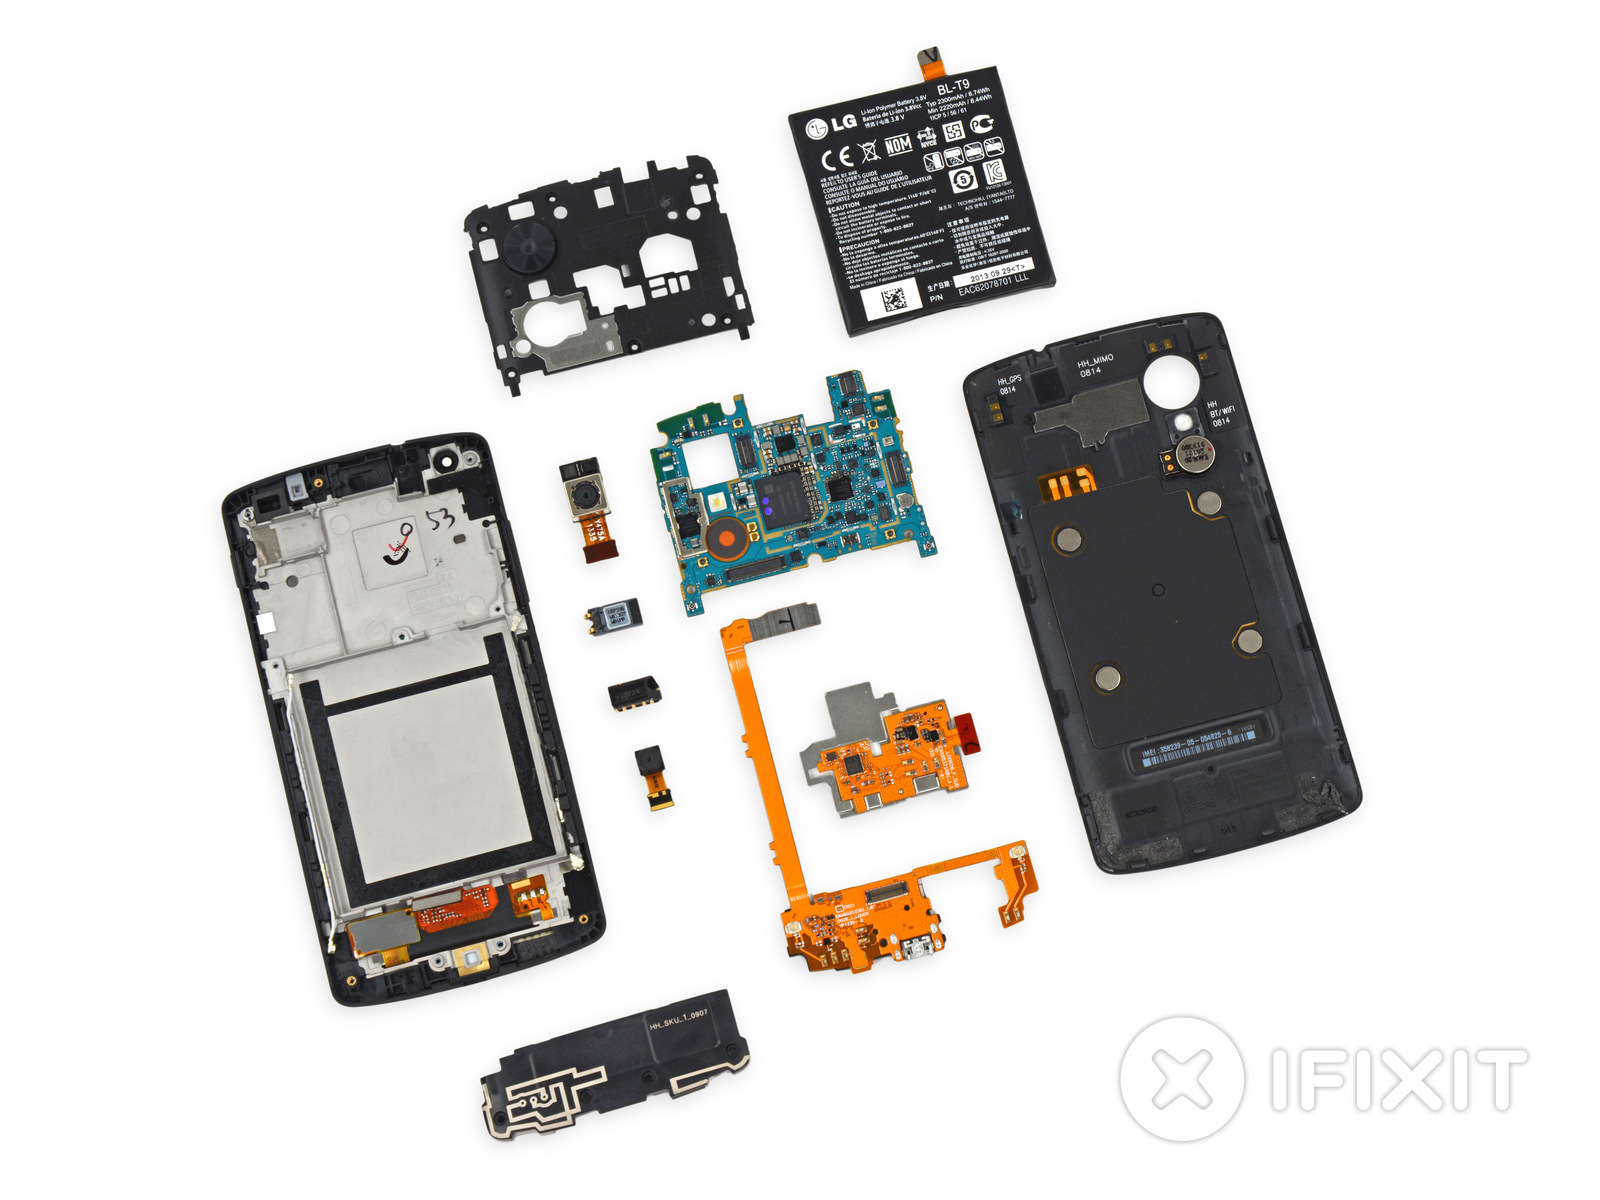 nexus5_teardown